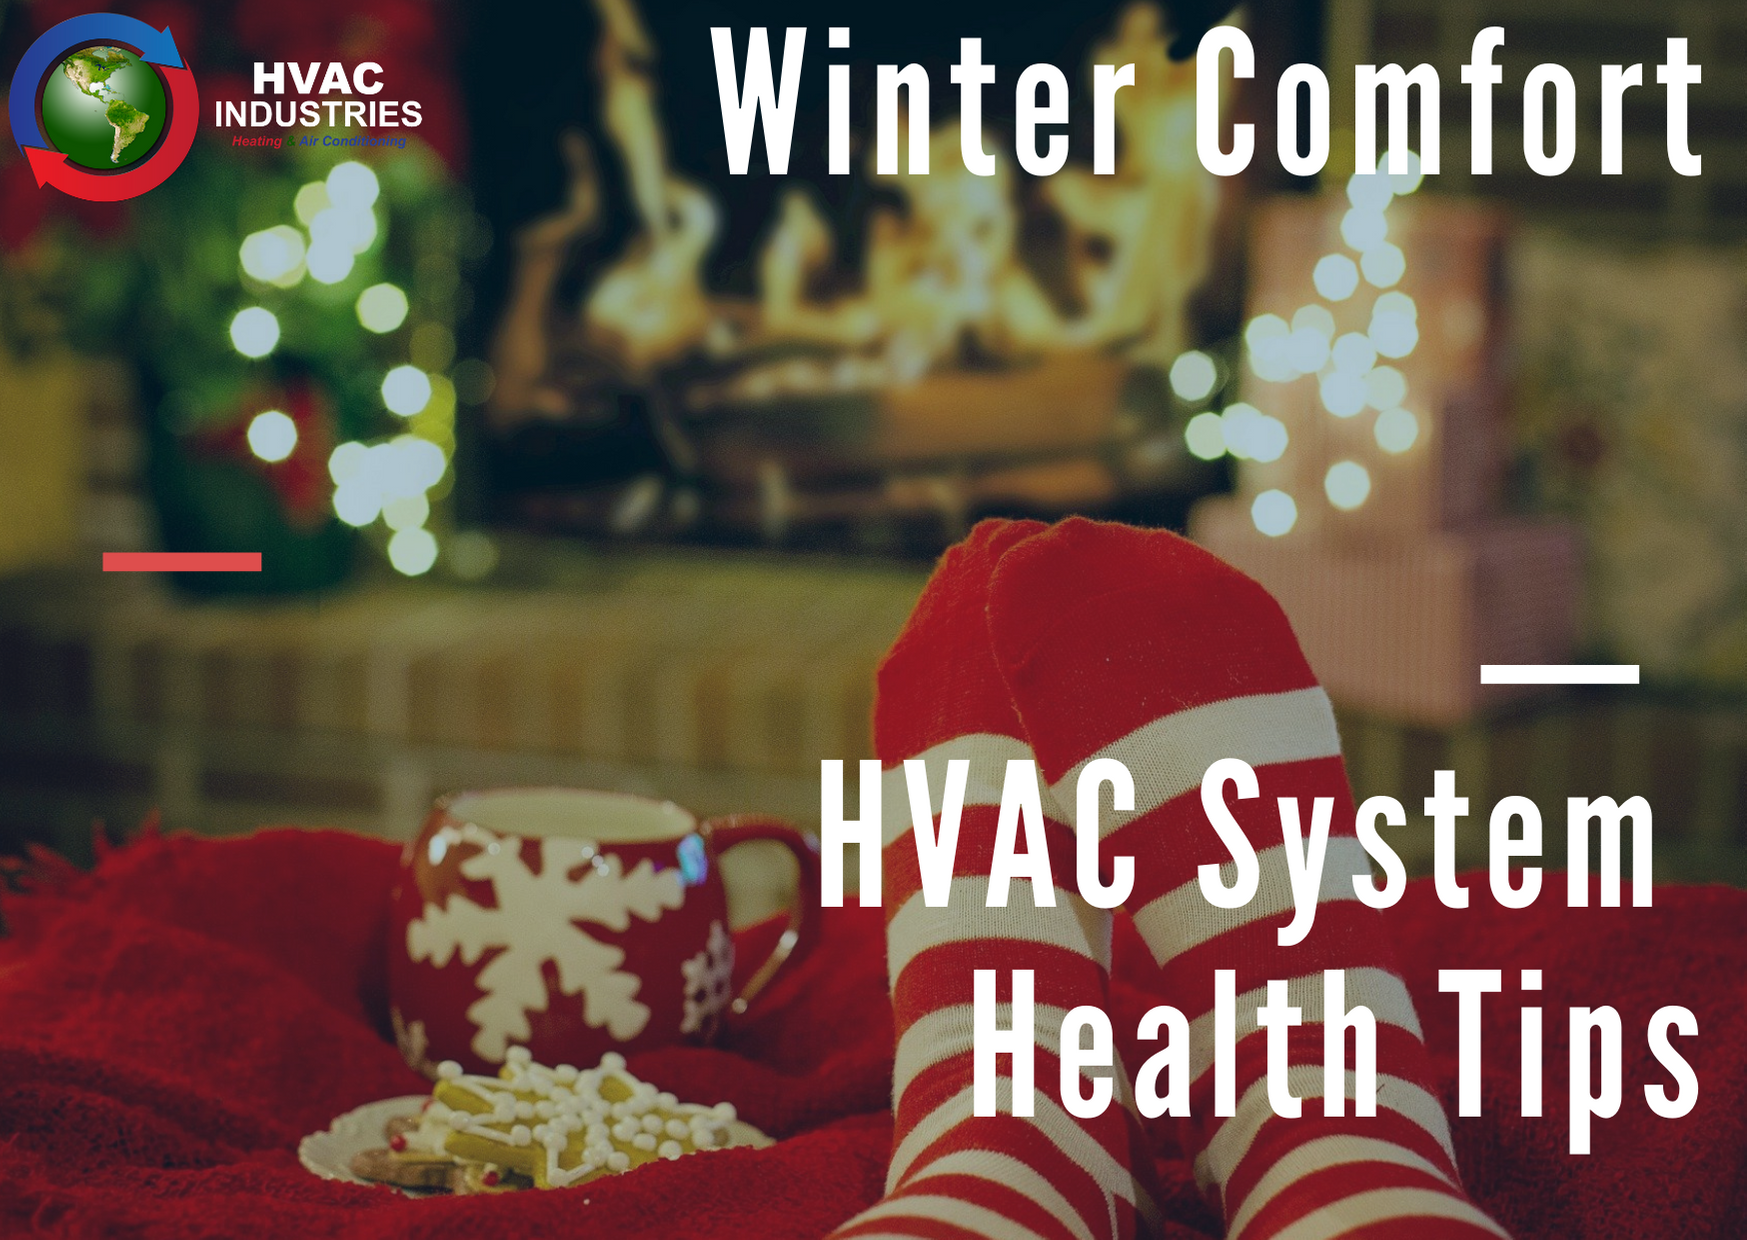 Winter Comfort System Health Tips